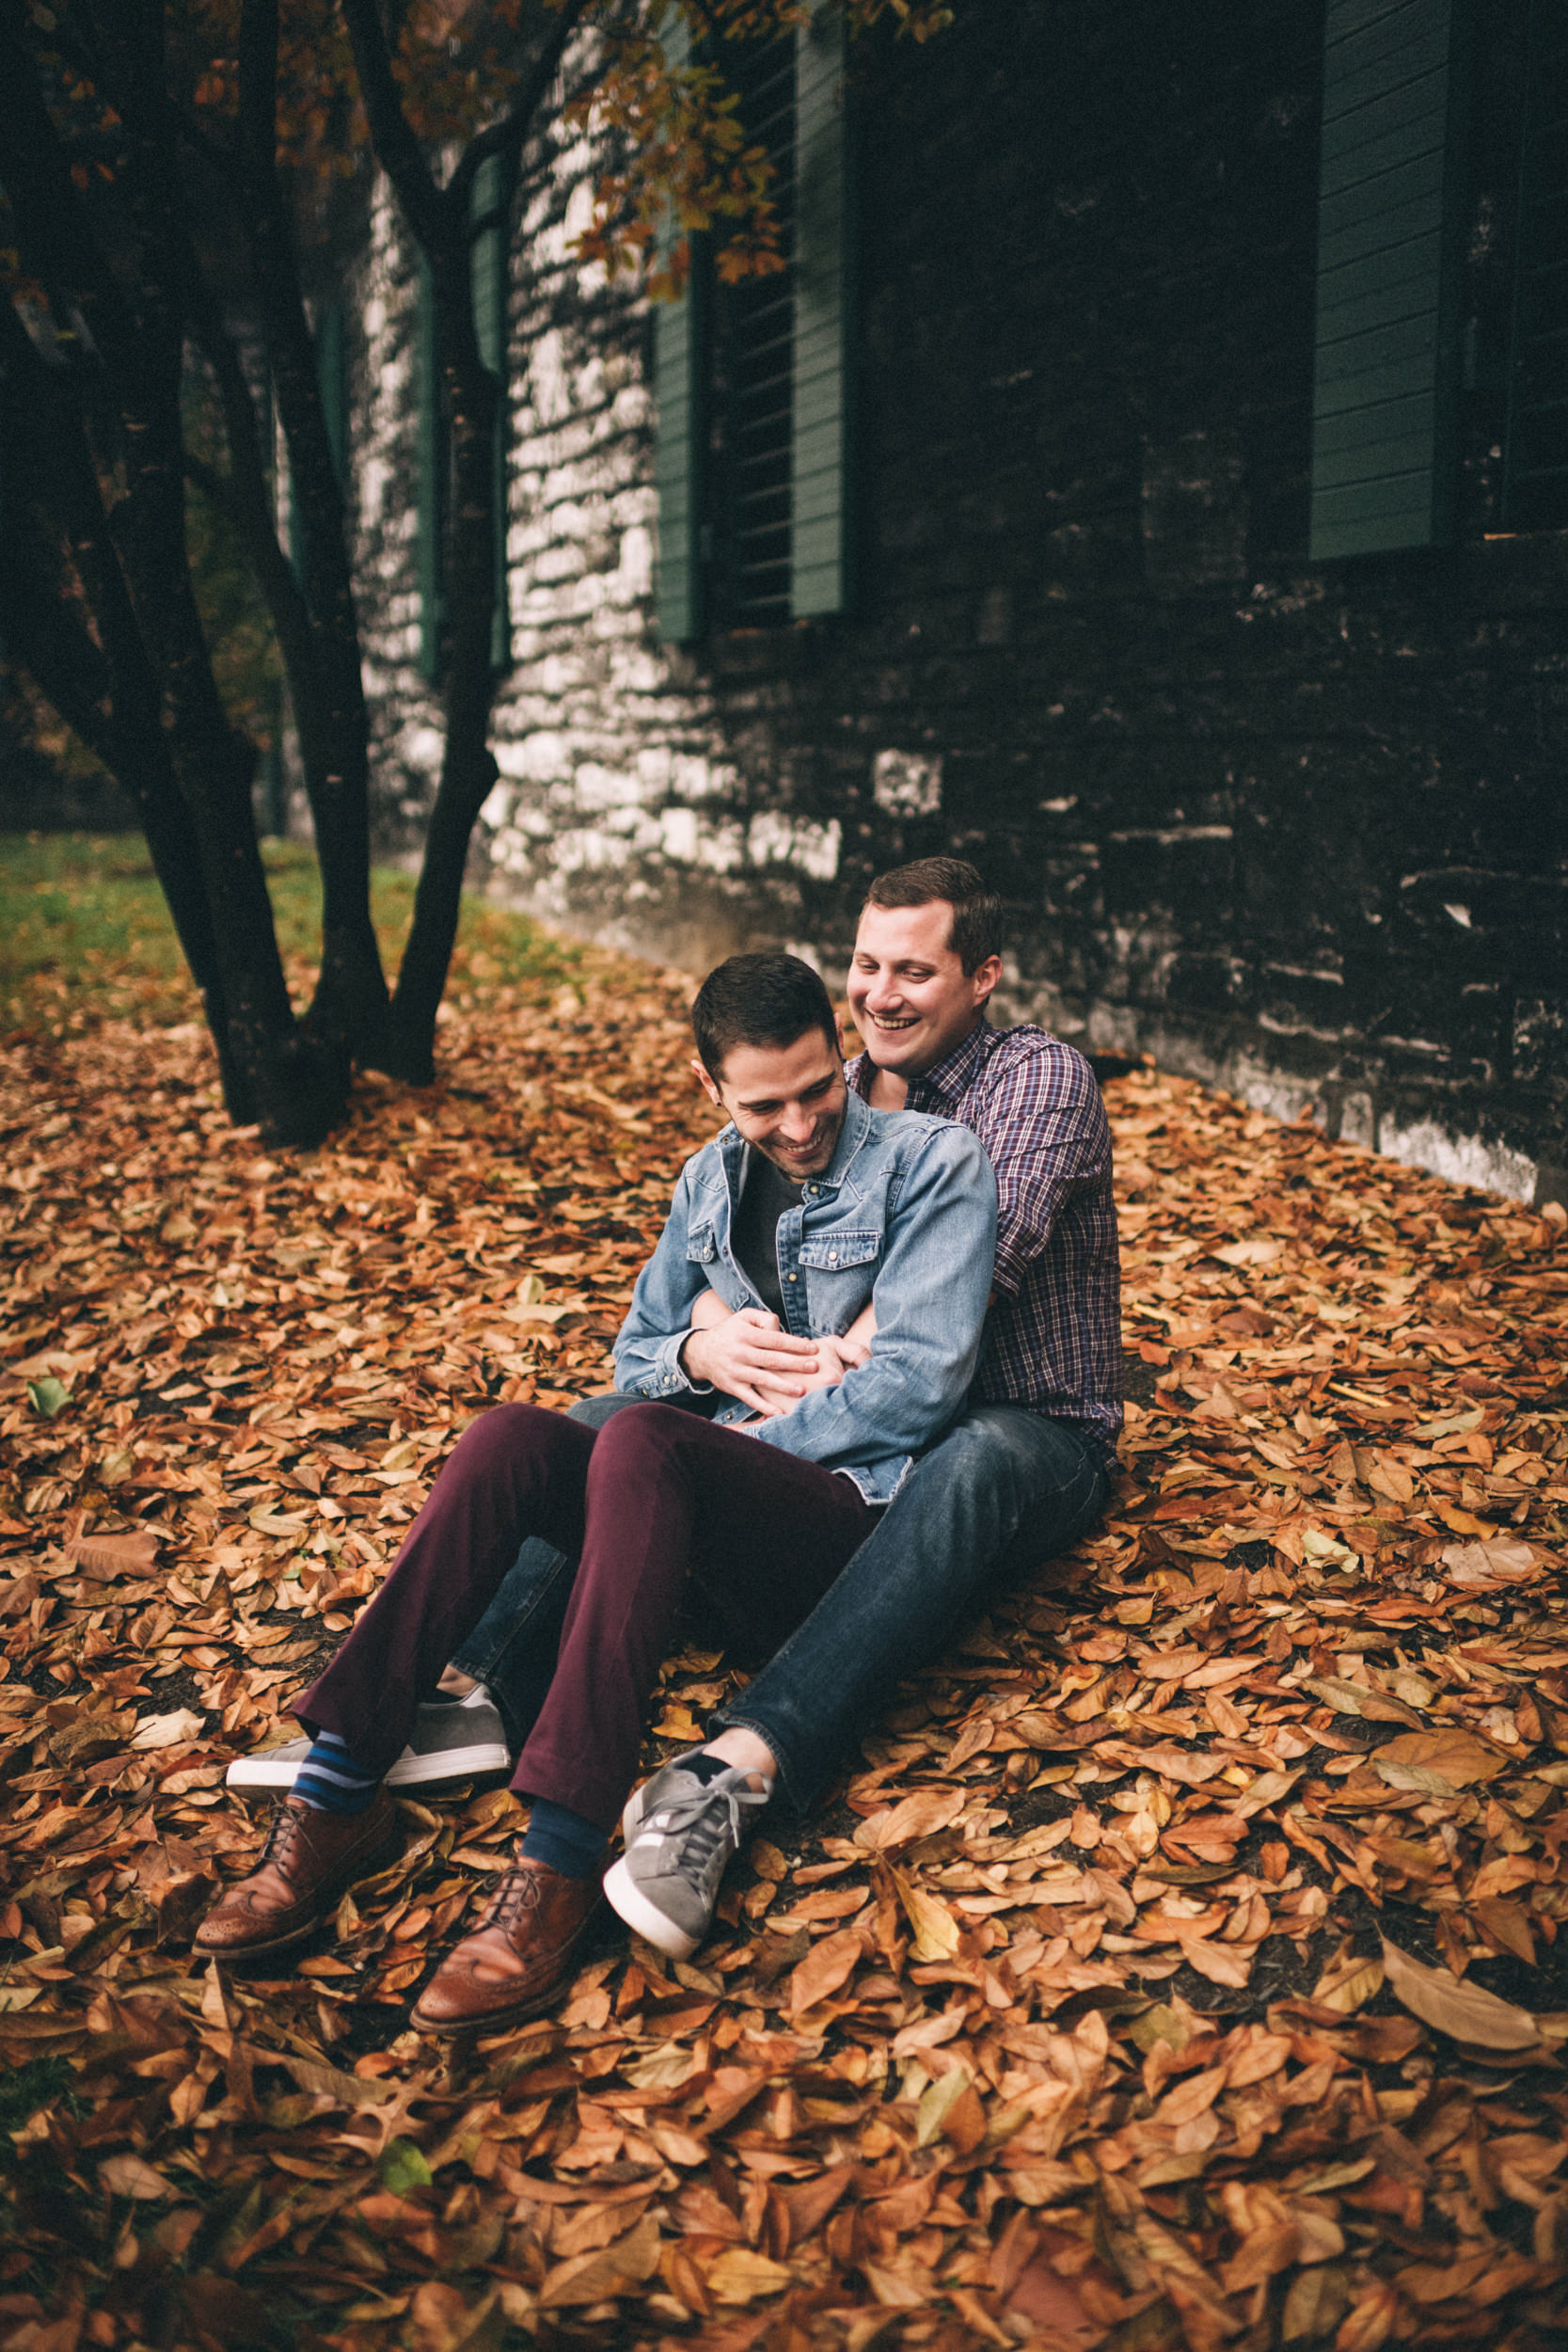 Will-Nate-Buffalo-Trace-Distillery-Engagement-Session-By-Kentucky-Wedding-Photographer-Sarah-Katherine-Davis-Photography-75edit.jpg